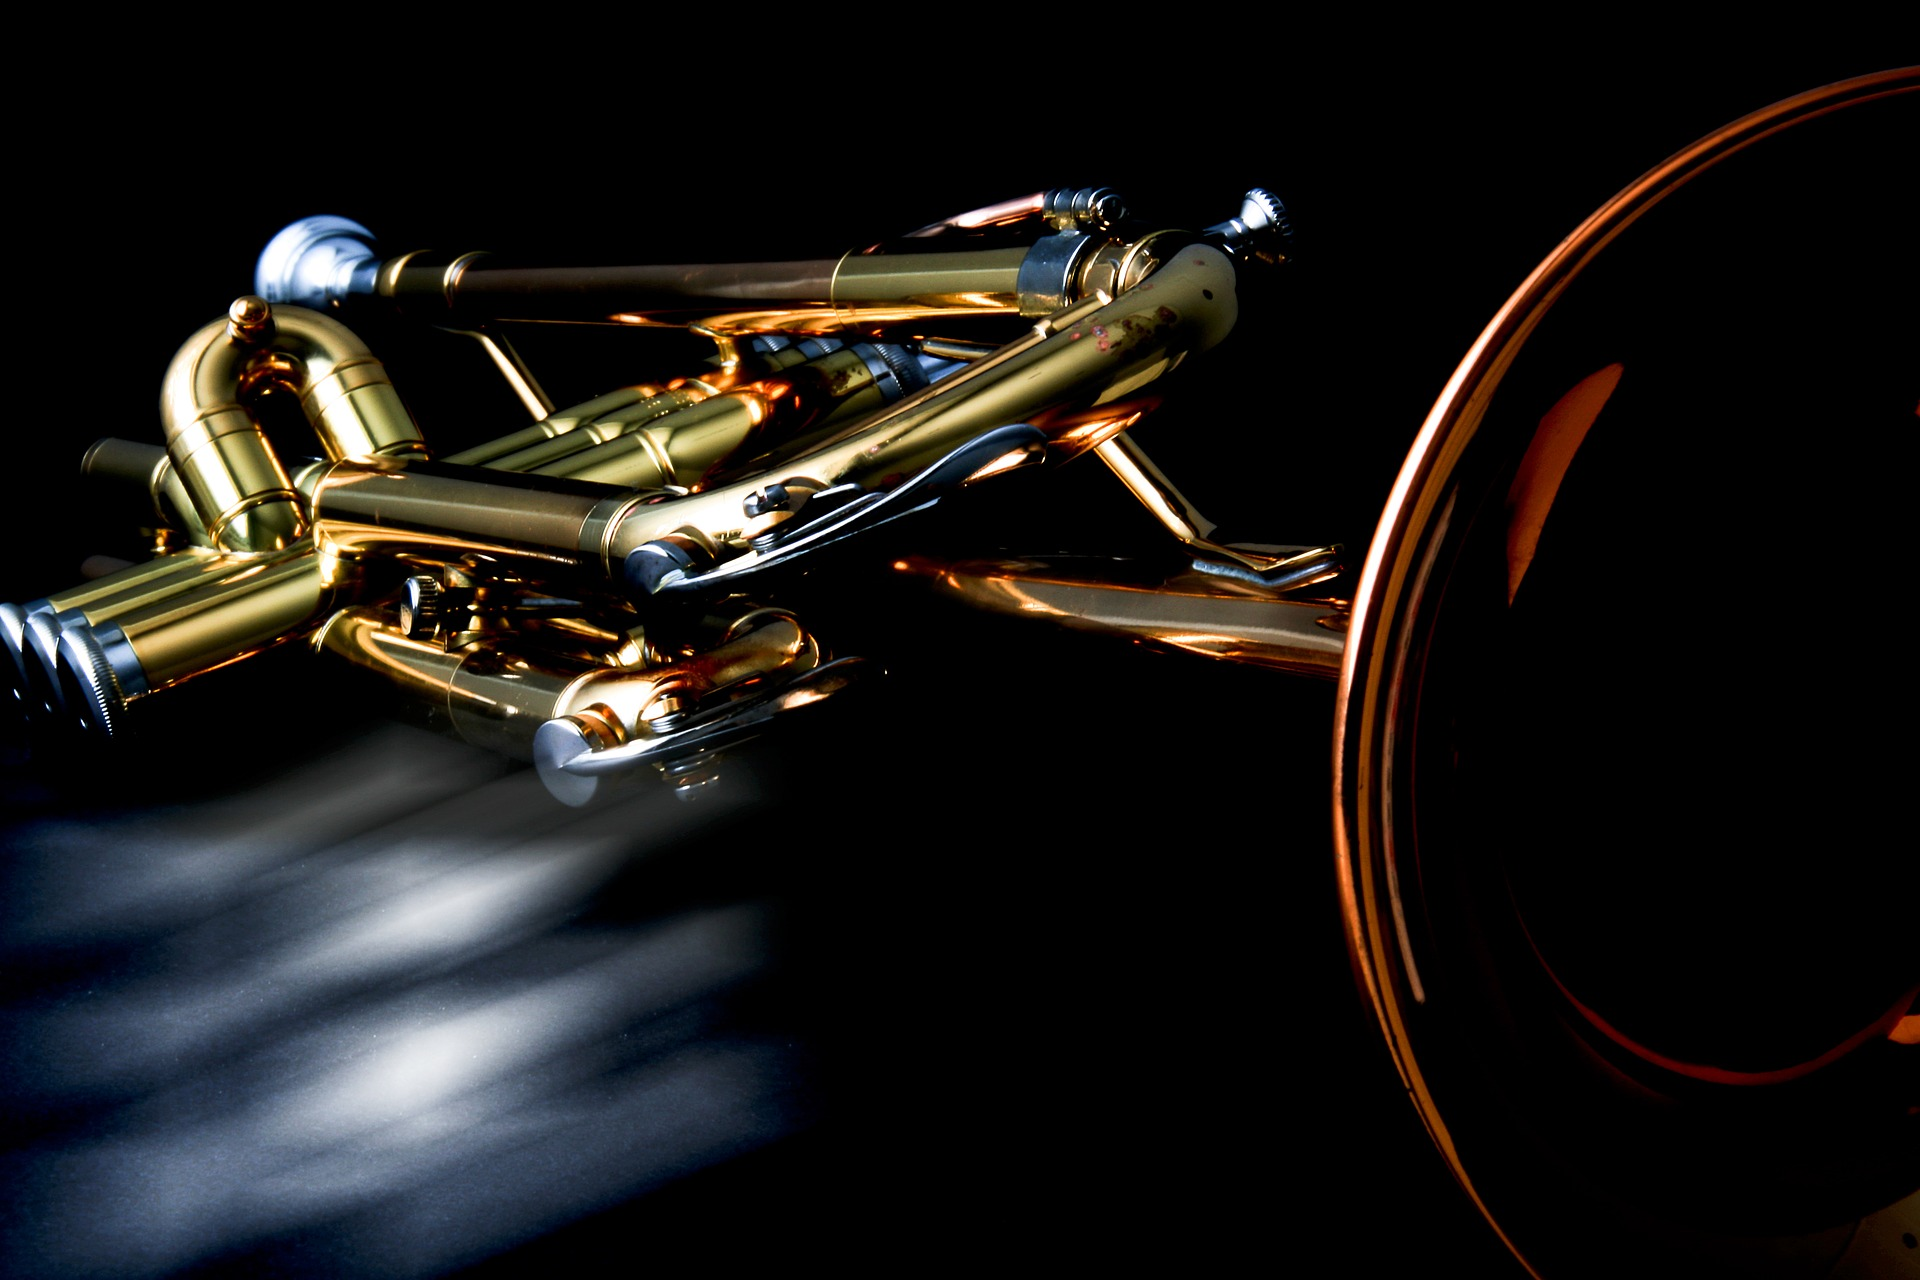 New Orleans Bump to kick start new season of Halesowen jazz sessions. Pic: Pixabay